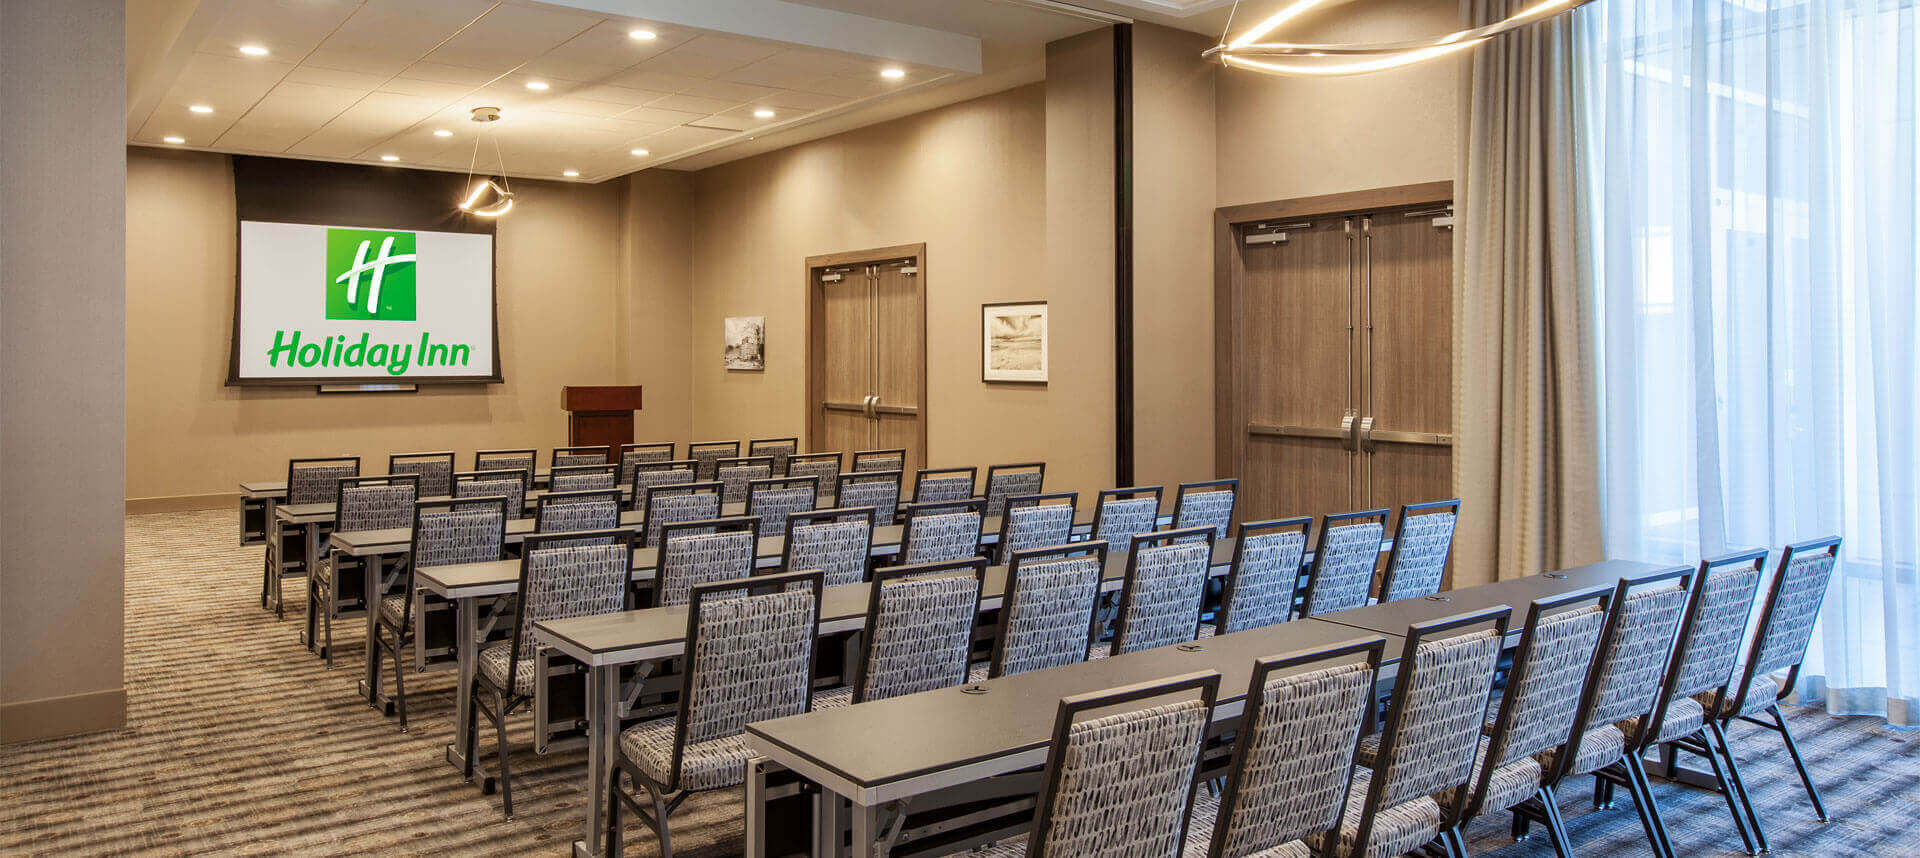 Holiday Inn Cleveland Clinic, Ohio Meeting & Events